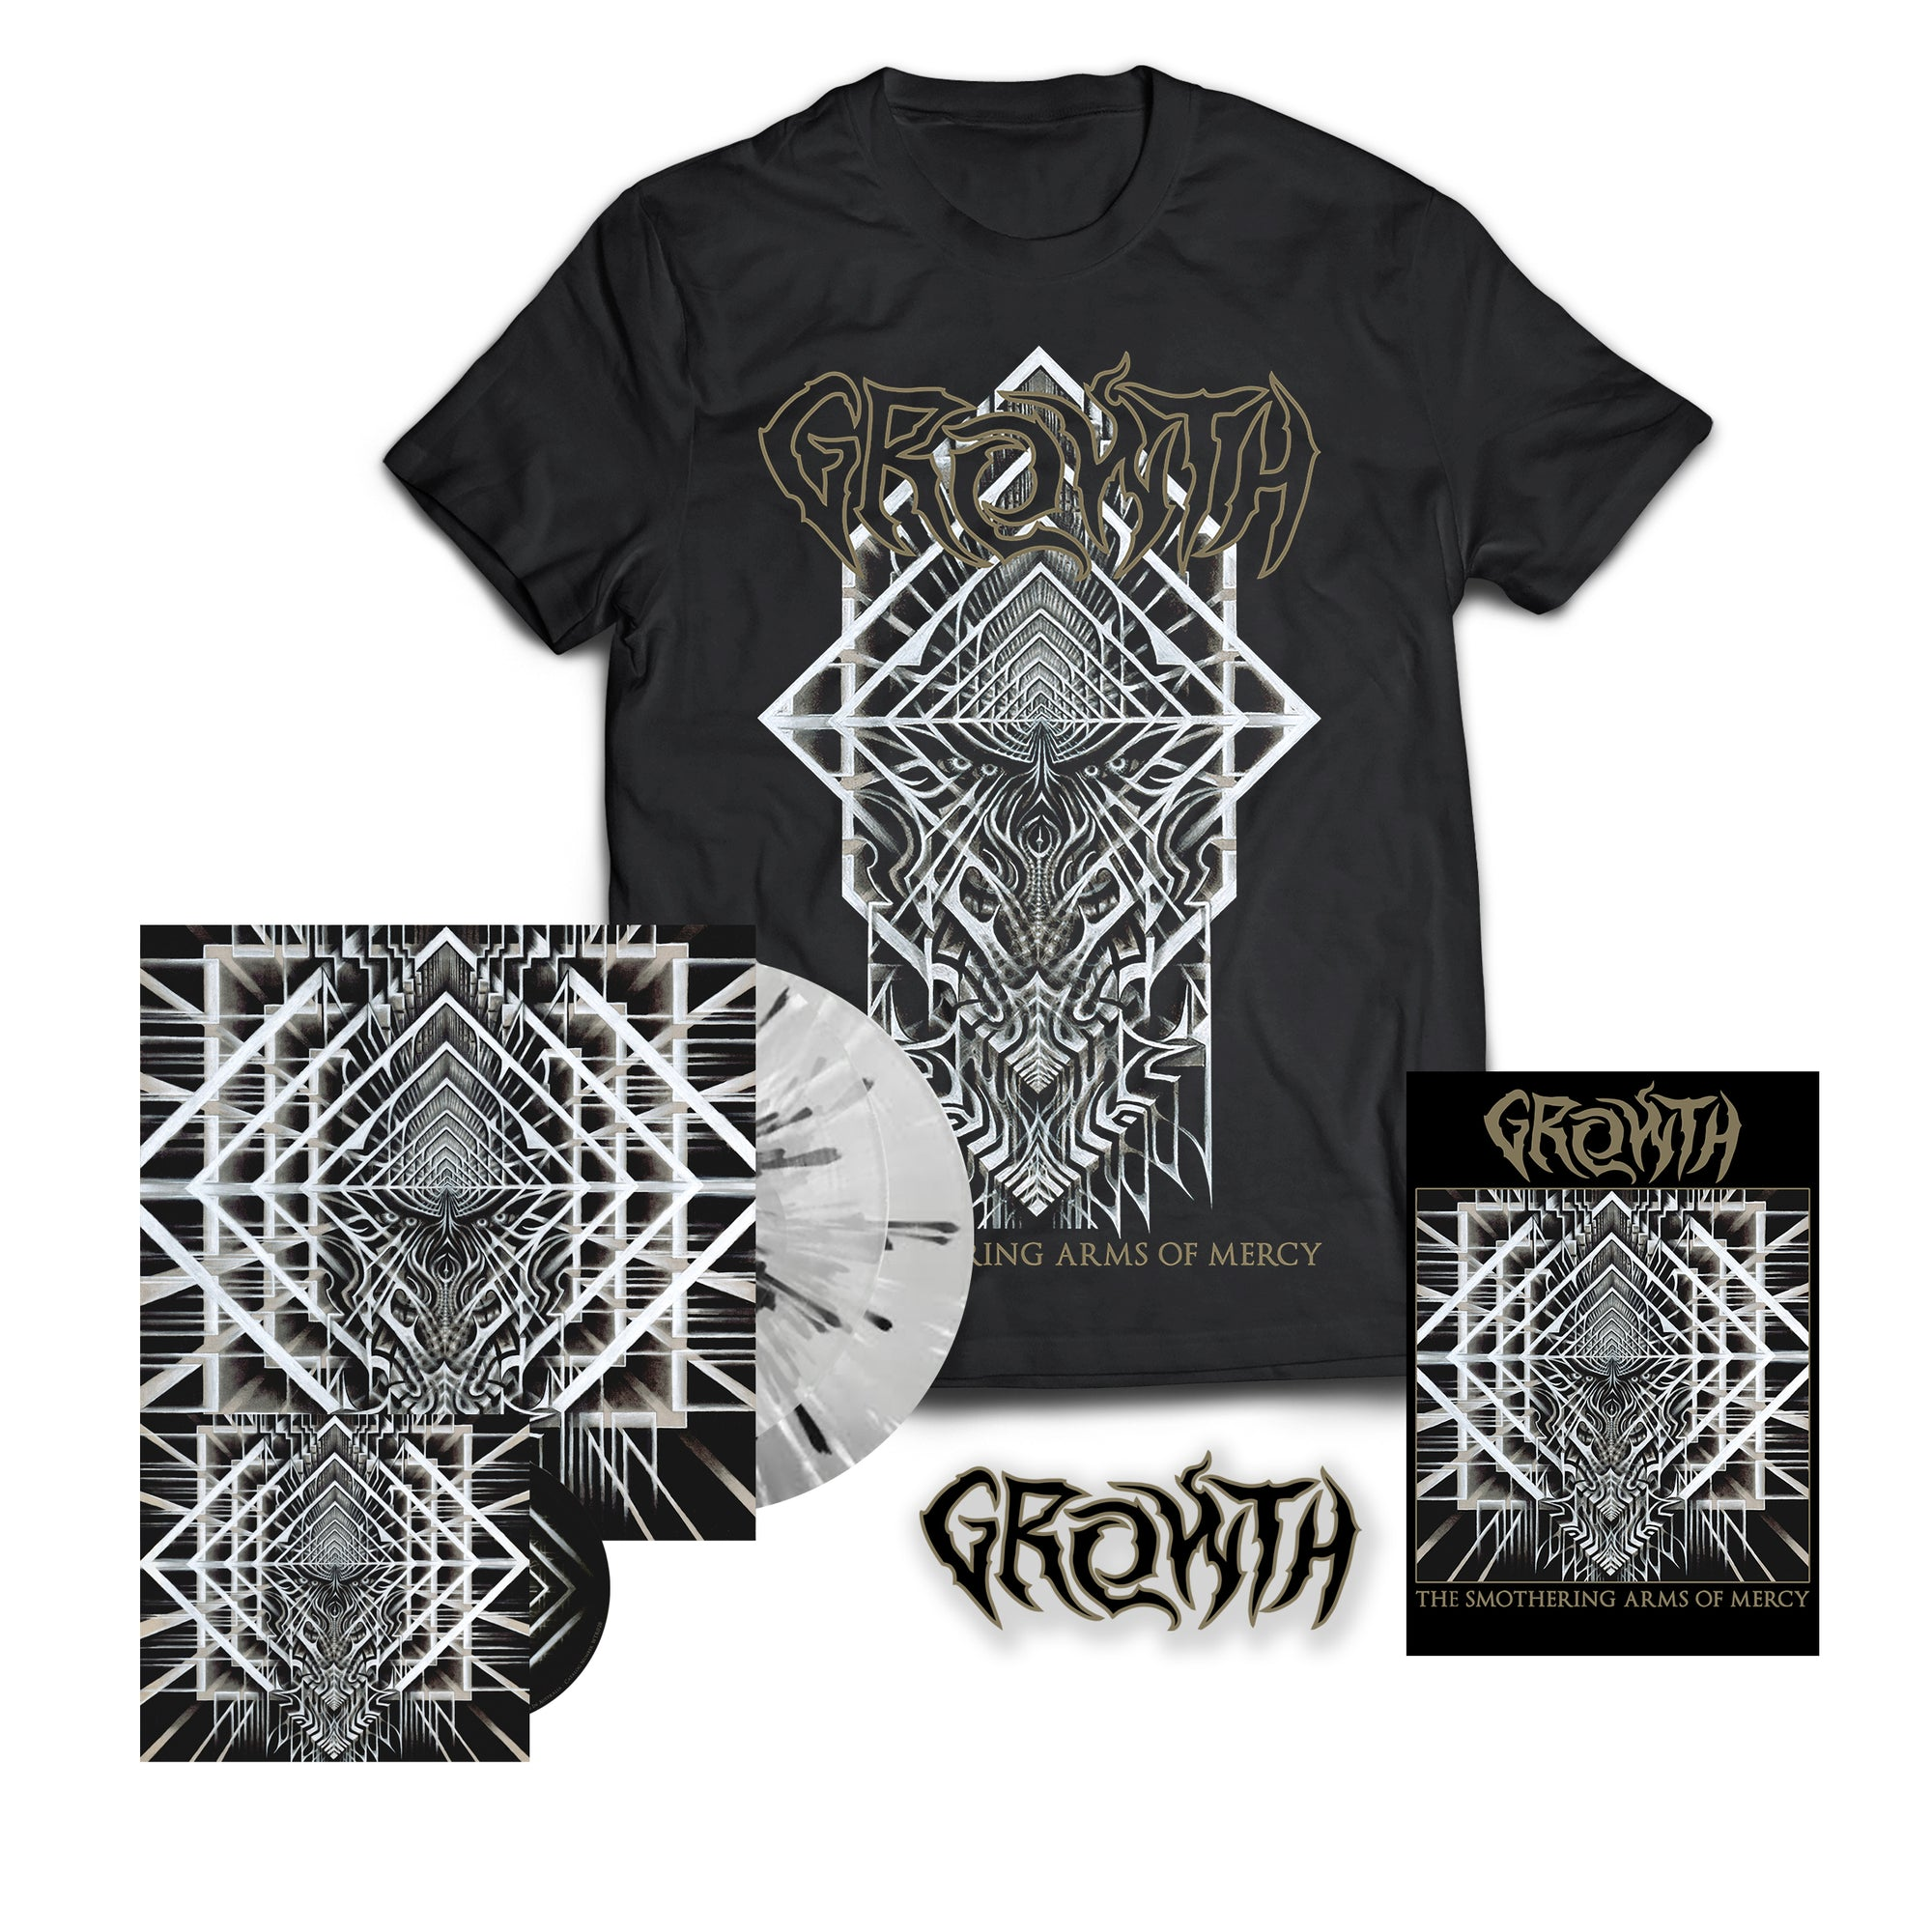 GROWTH // THE SMOTHERING ARMS OF MERCY - COMPLETE BUNDLE - Wild Thing Records